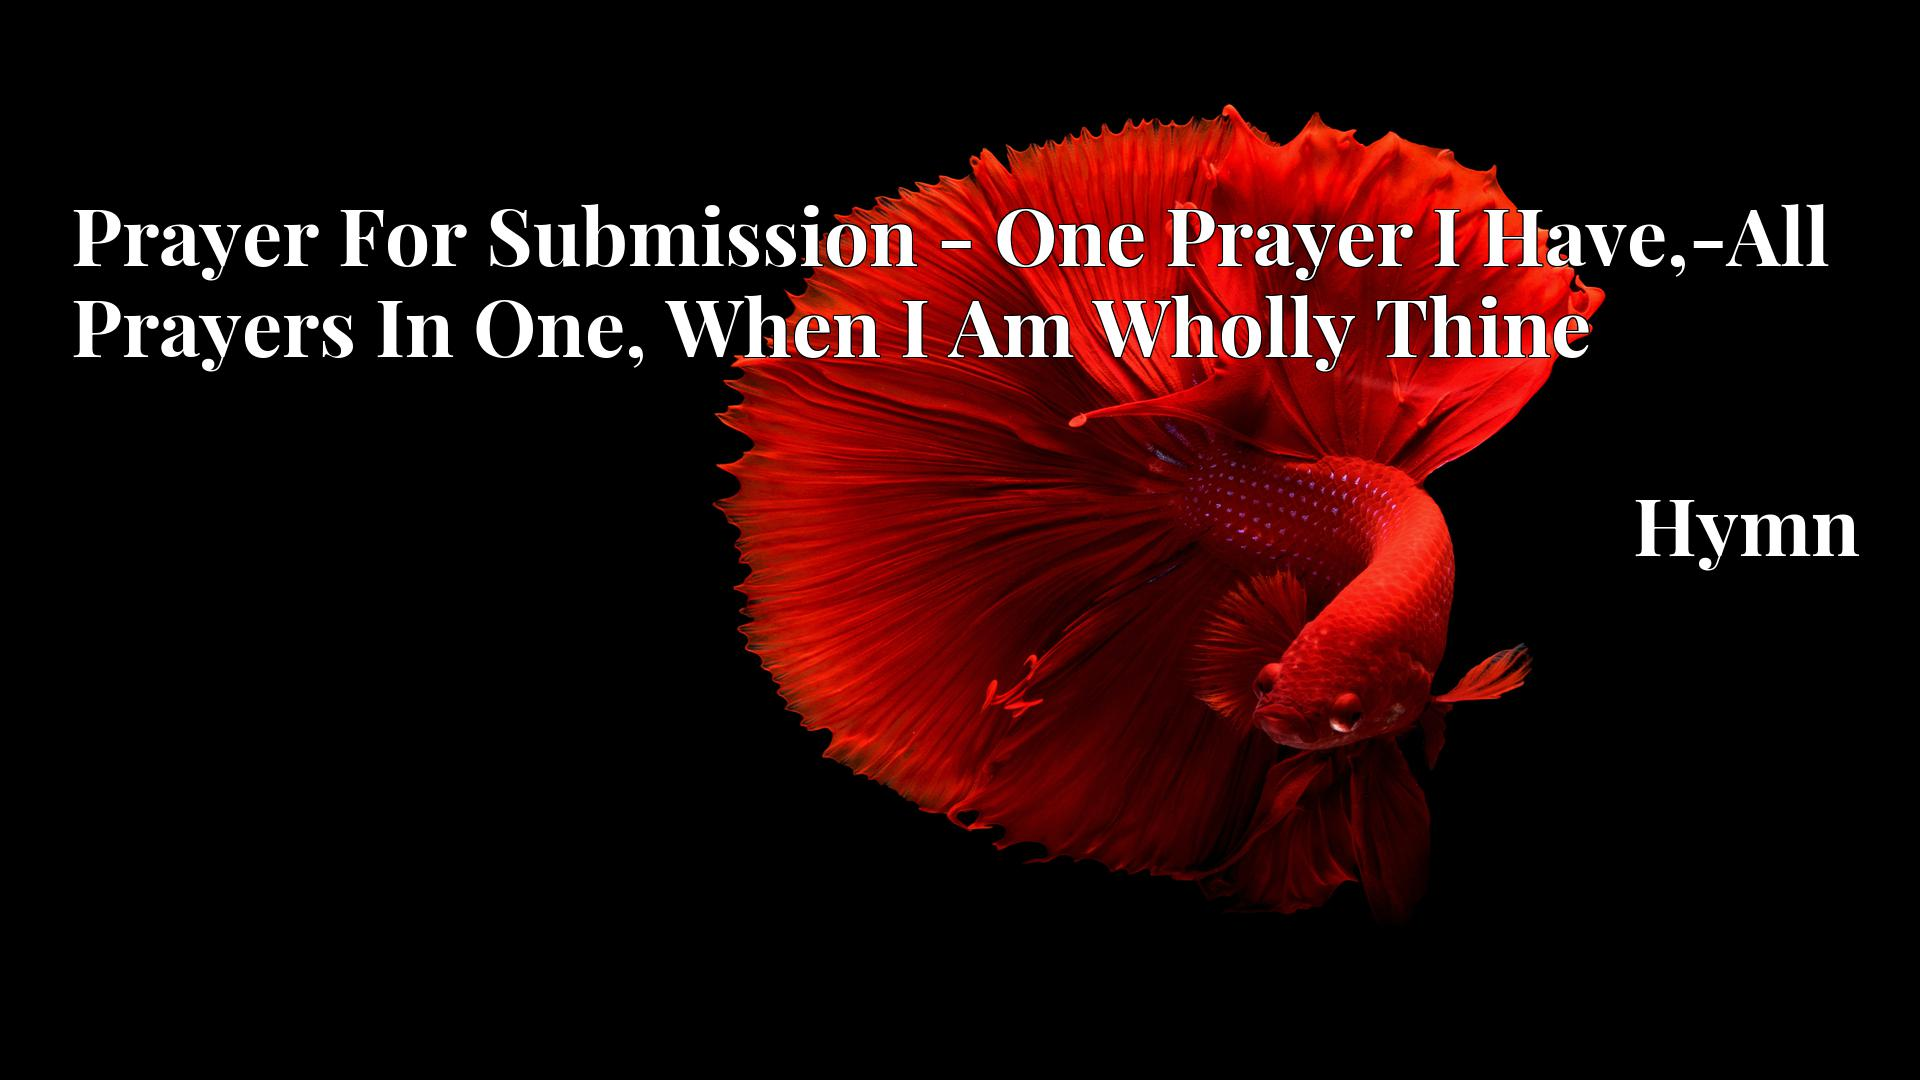 Prayer For Submission - One Prayer I Have,-All Prayers In One, When I Am Wholly Thine - Hymn